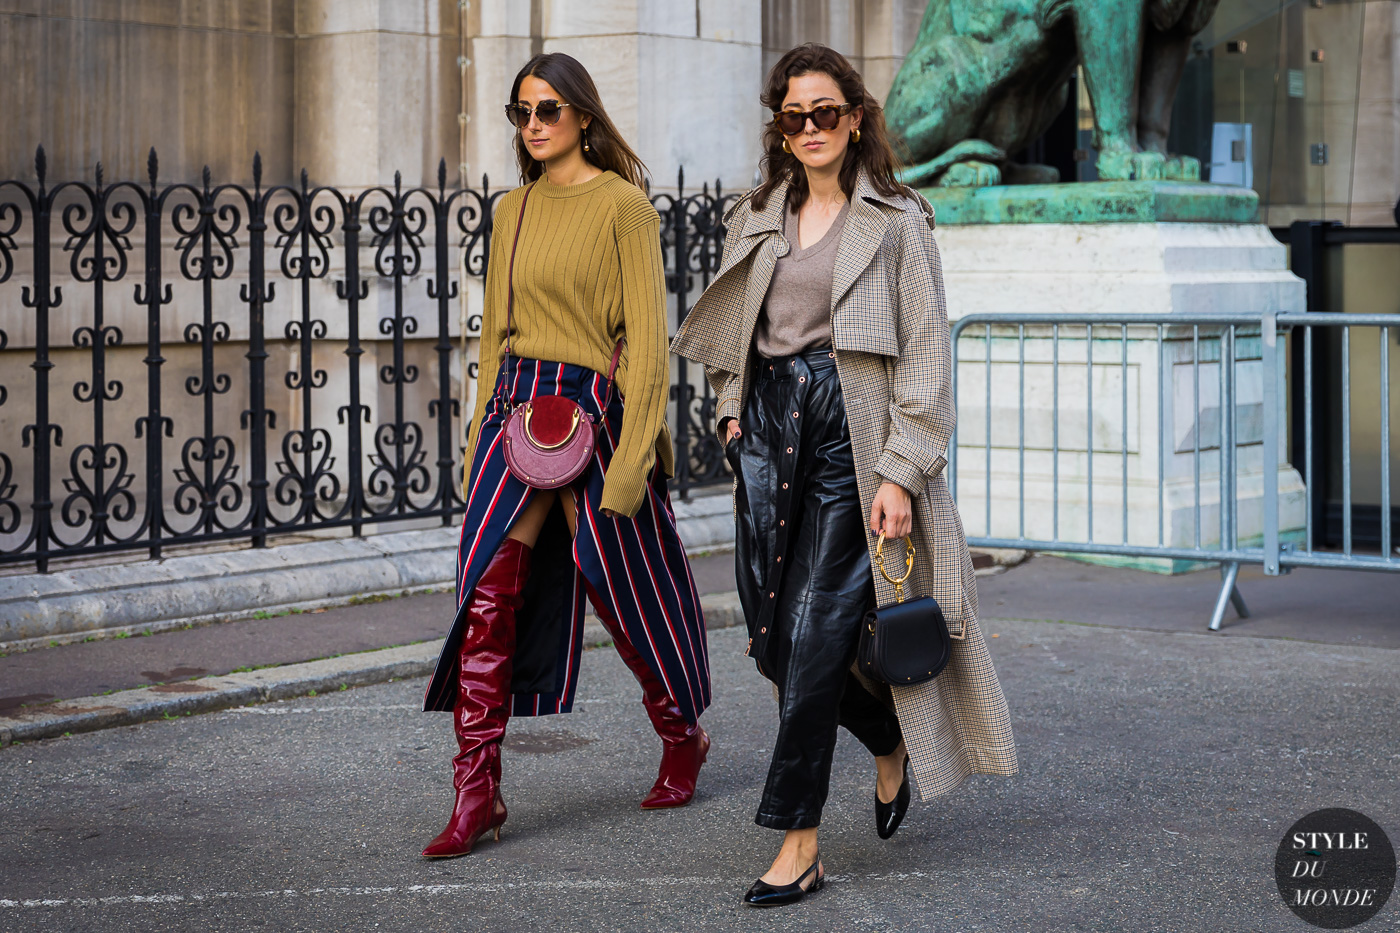 Julia and Sylvia Haghjoo by STYLEDUMONDE Street Style Fashion Photography_48A6933